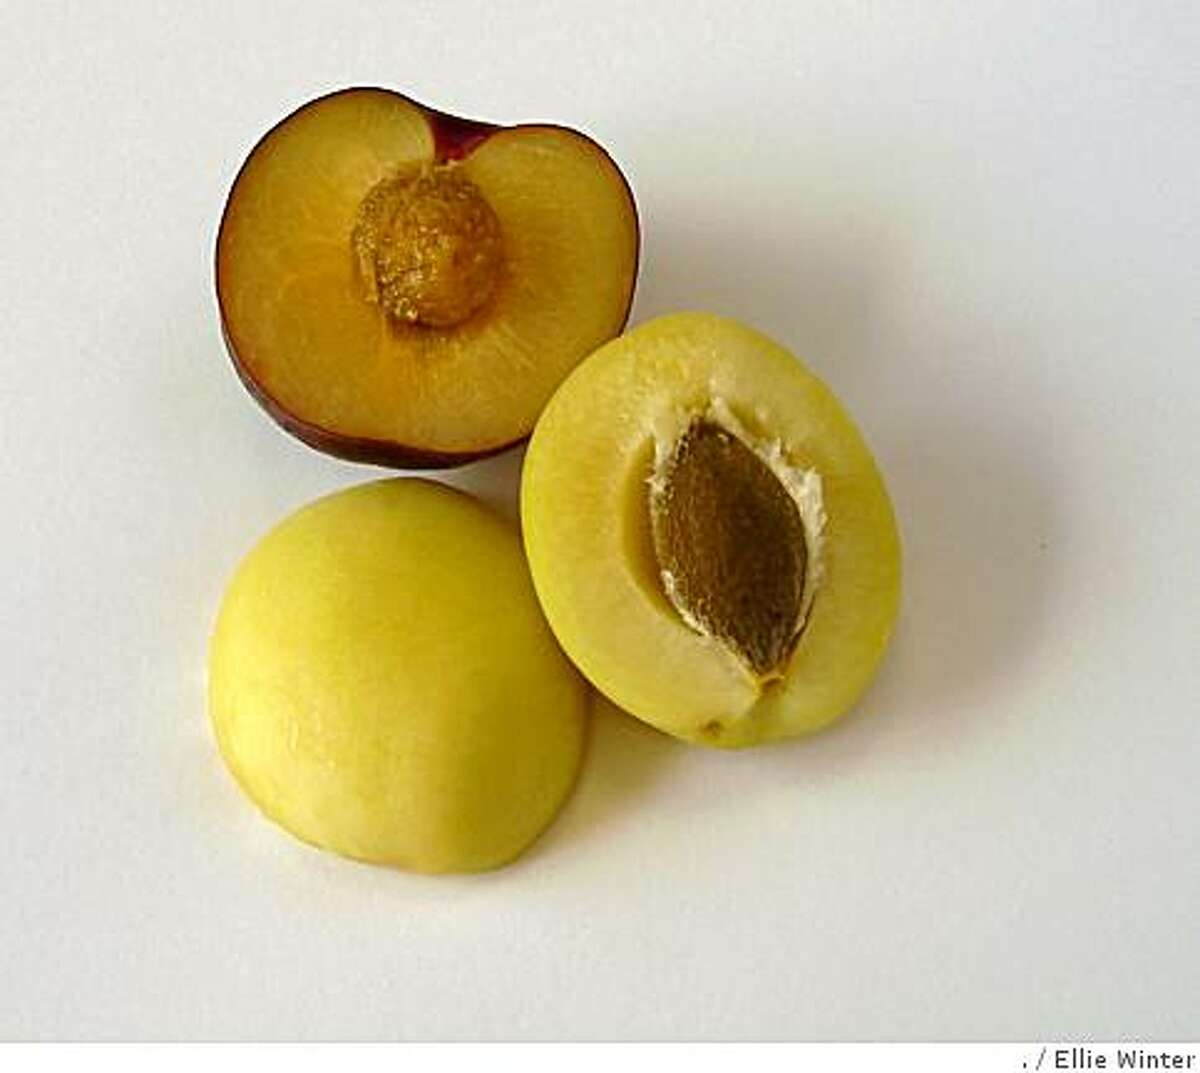 Apricot pits are the source of potentially harmful substances.